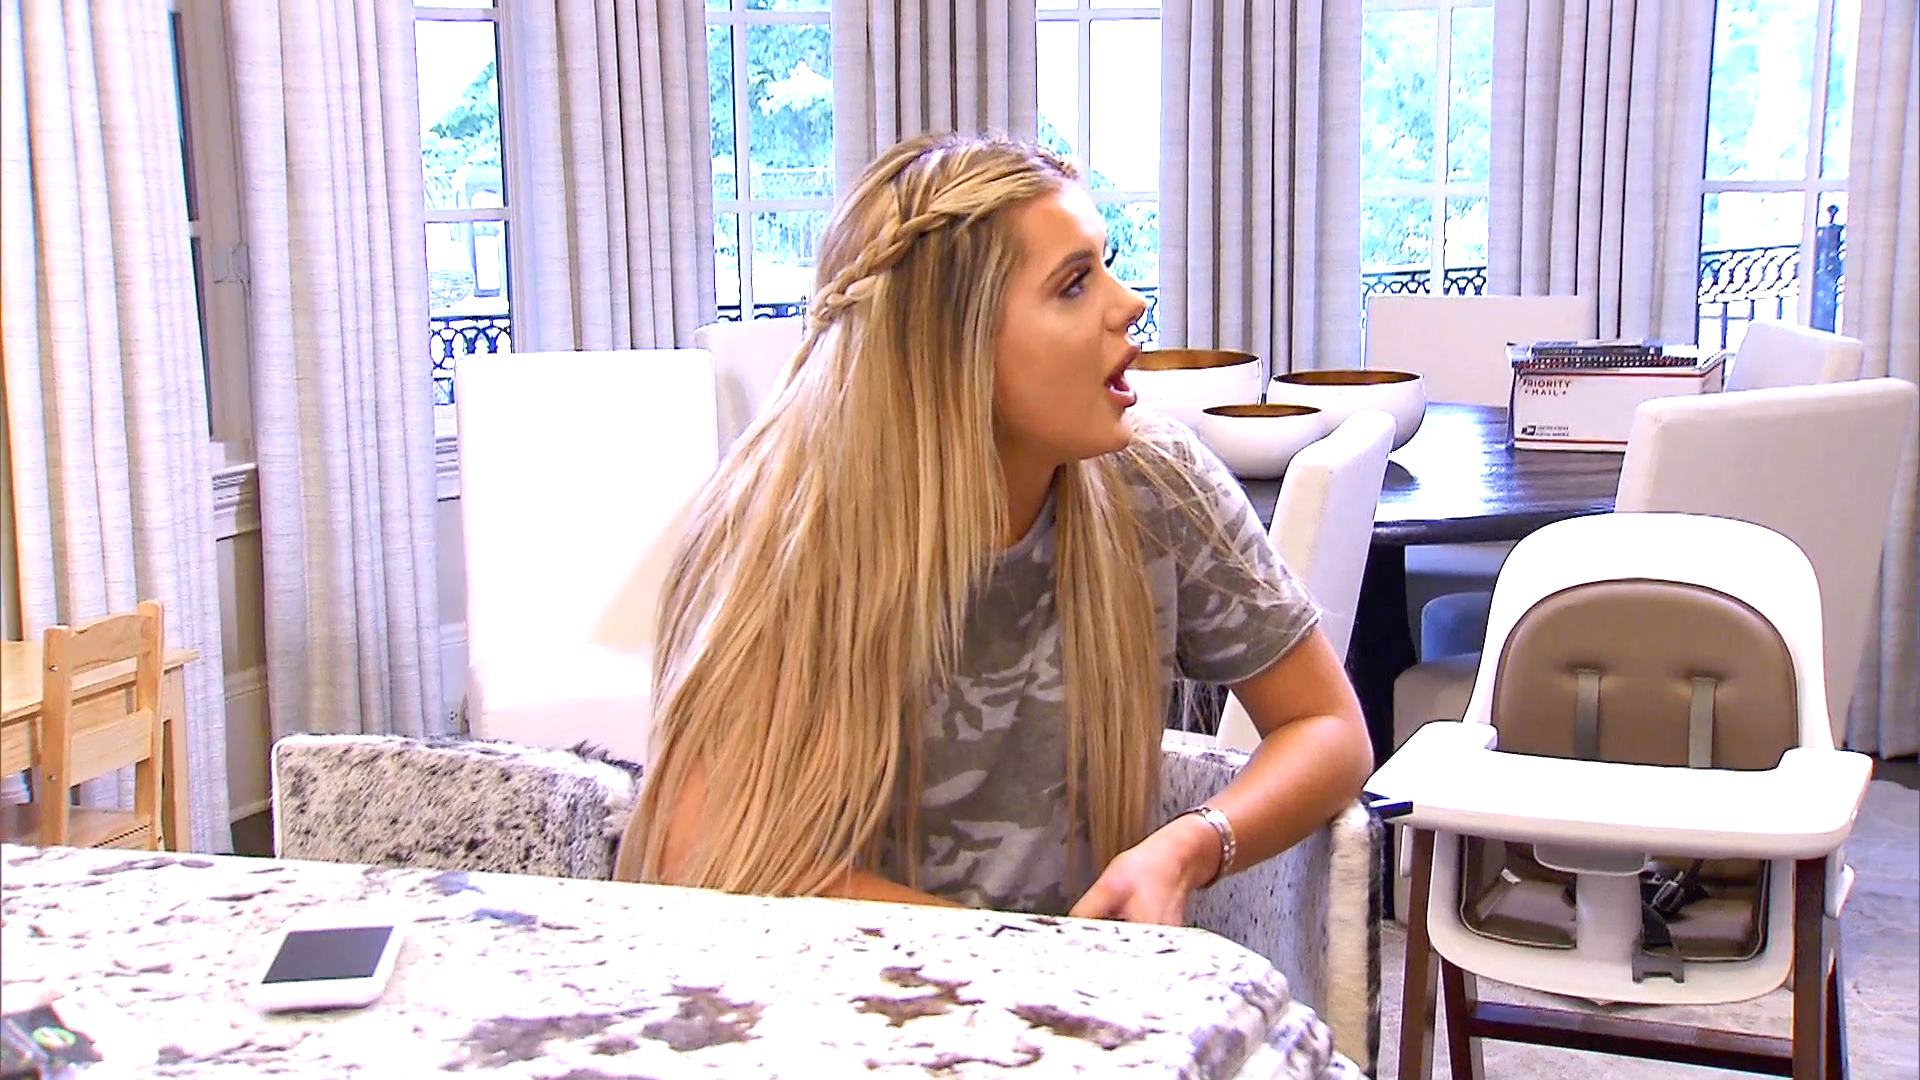 Brielle Biermann's Dirty Laundry Exposed!